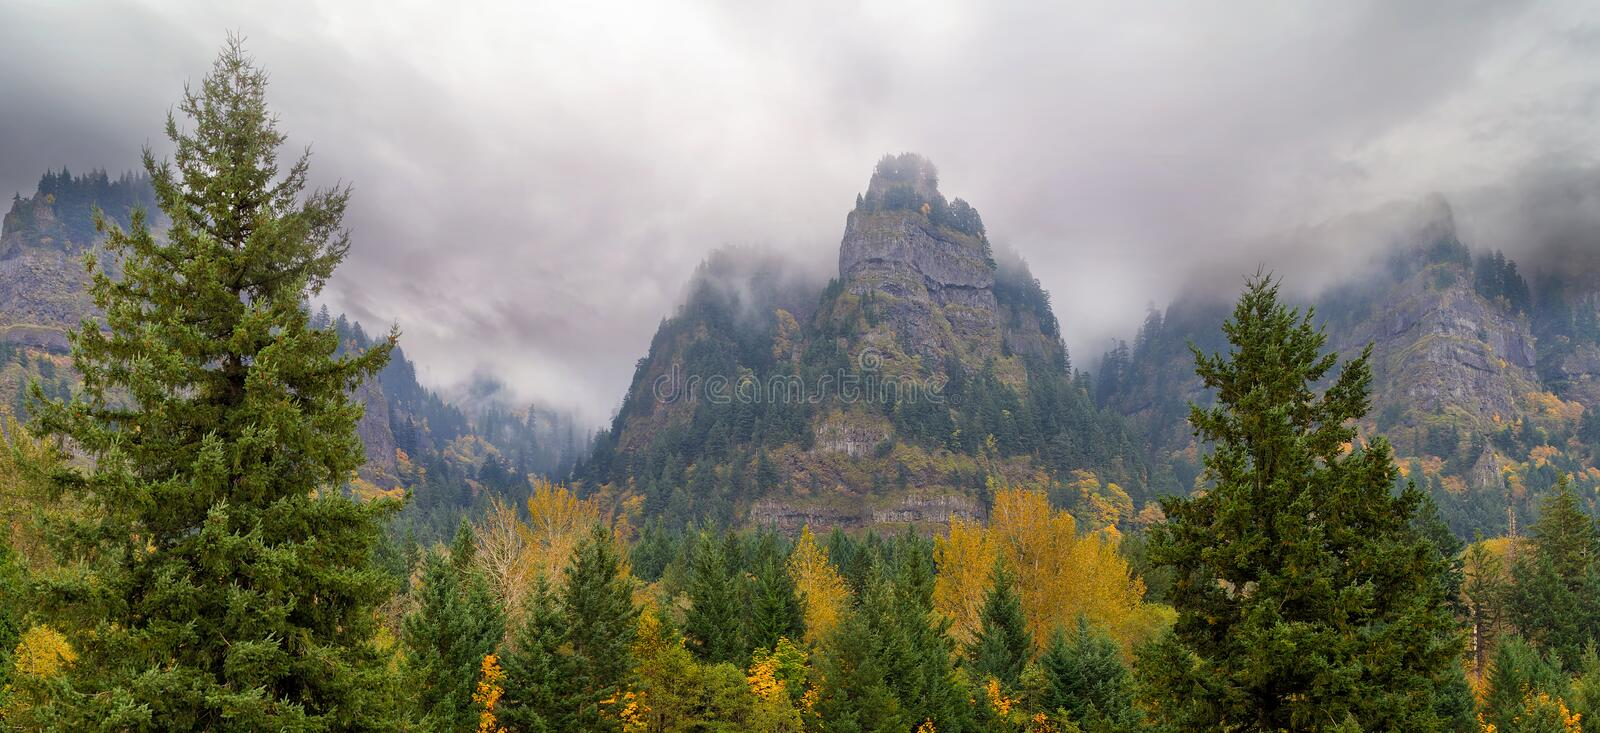 Saint Peters Dome at Columbia River Gorge fall season. St Peters Dome along Columbia River Gorge on a foggy day in fall season panorama stock photography